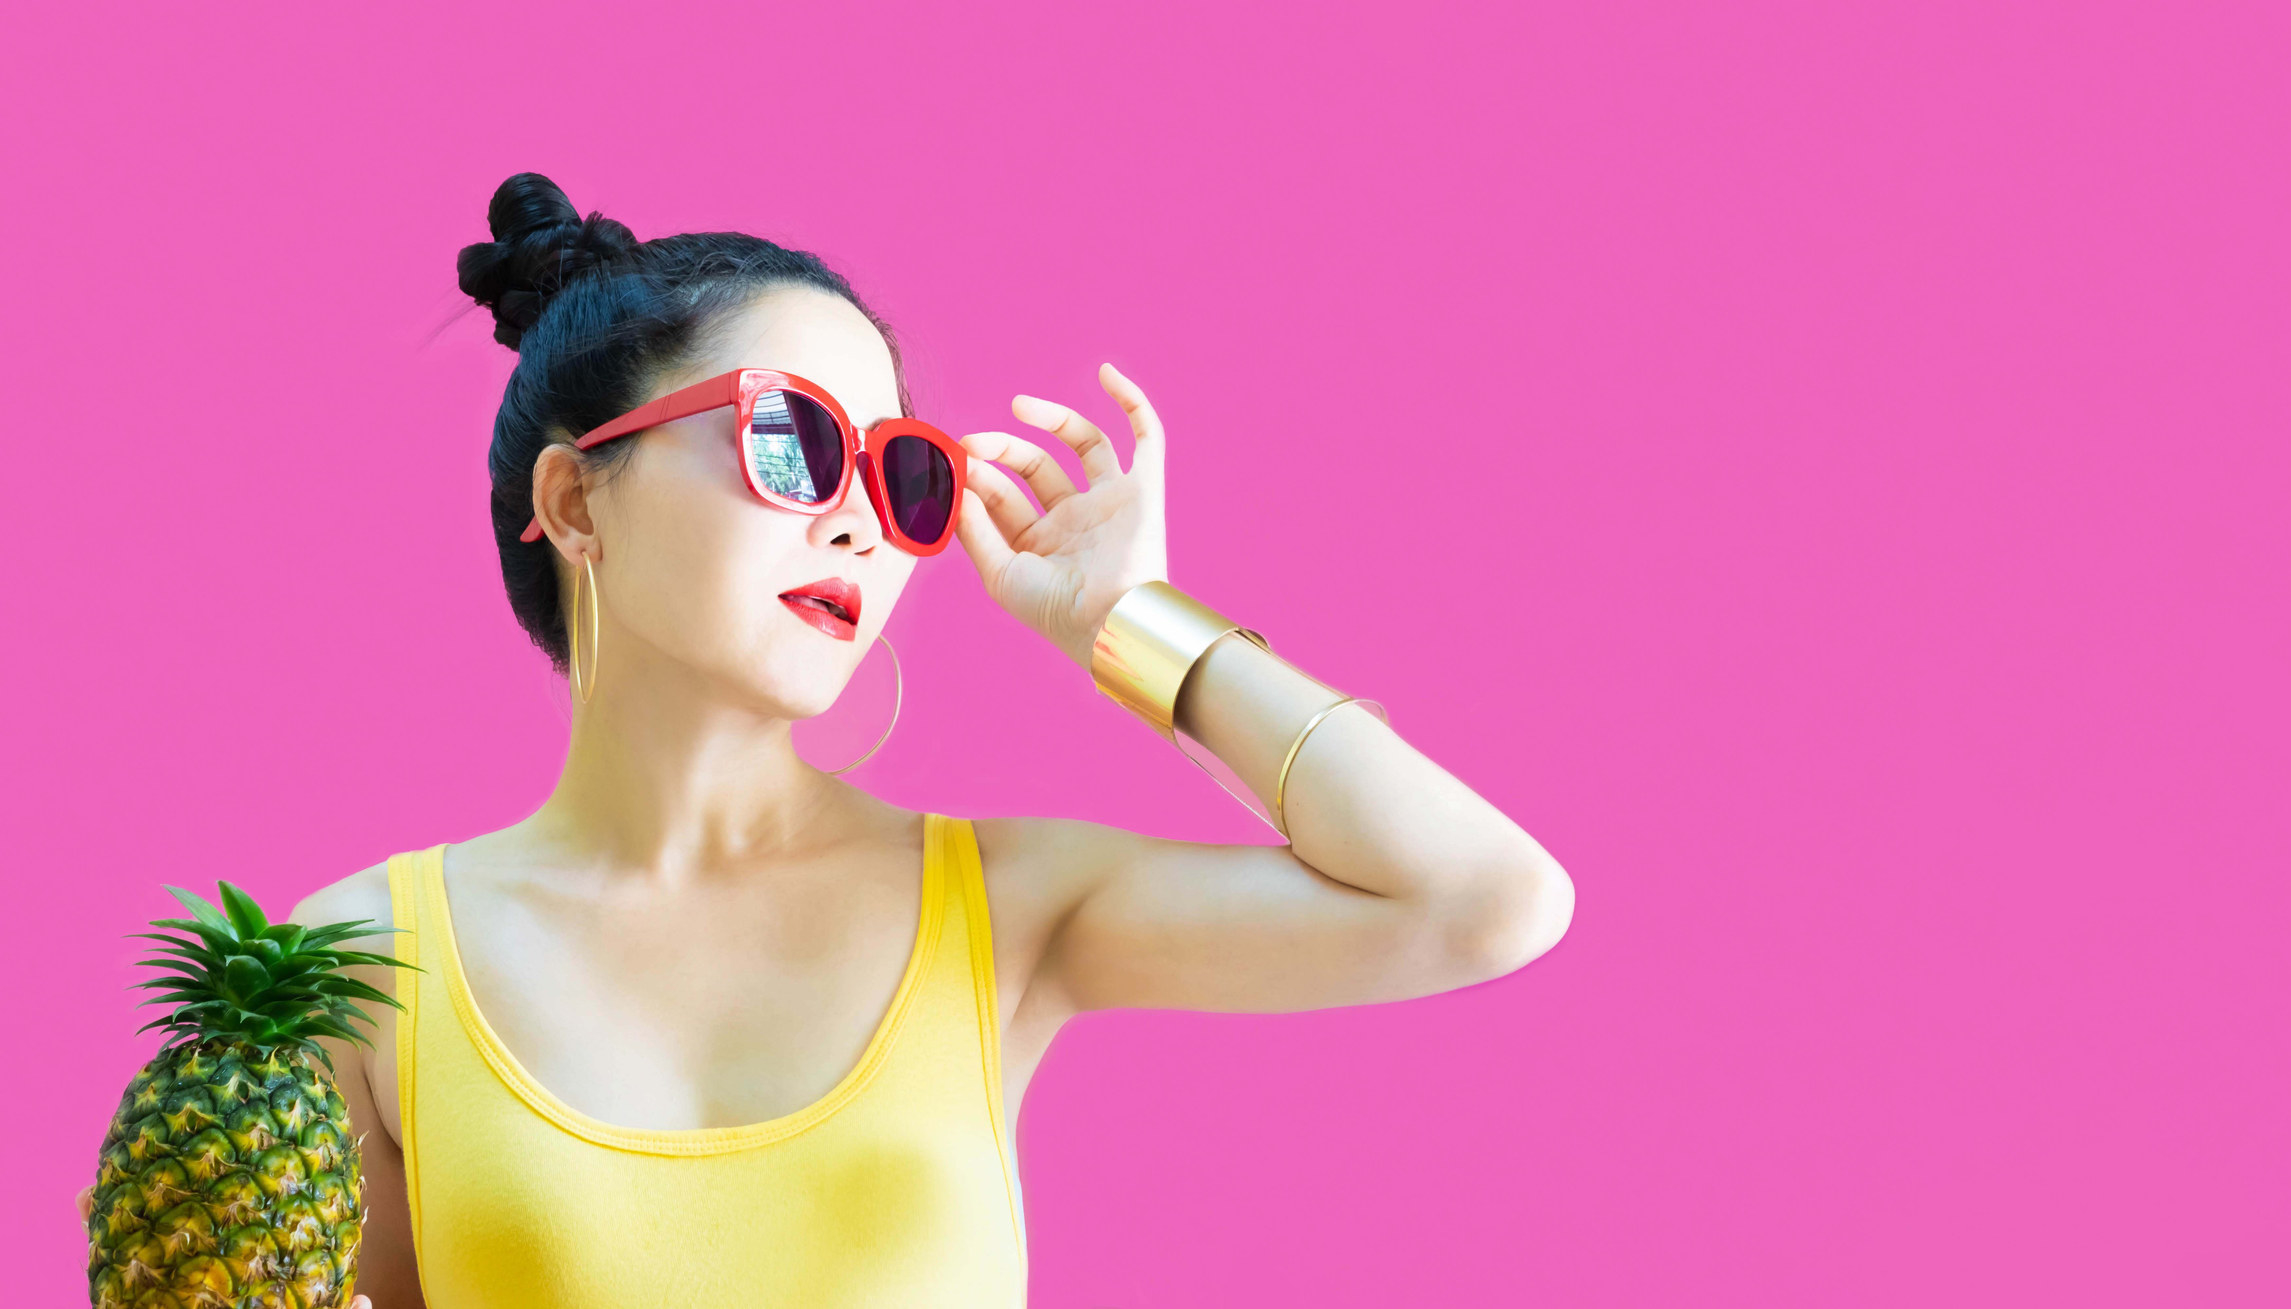 Woman holding a pineapple while wearing red sunglasses